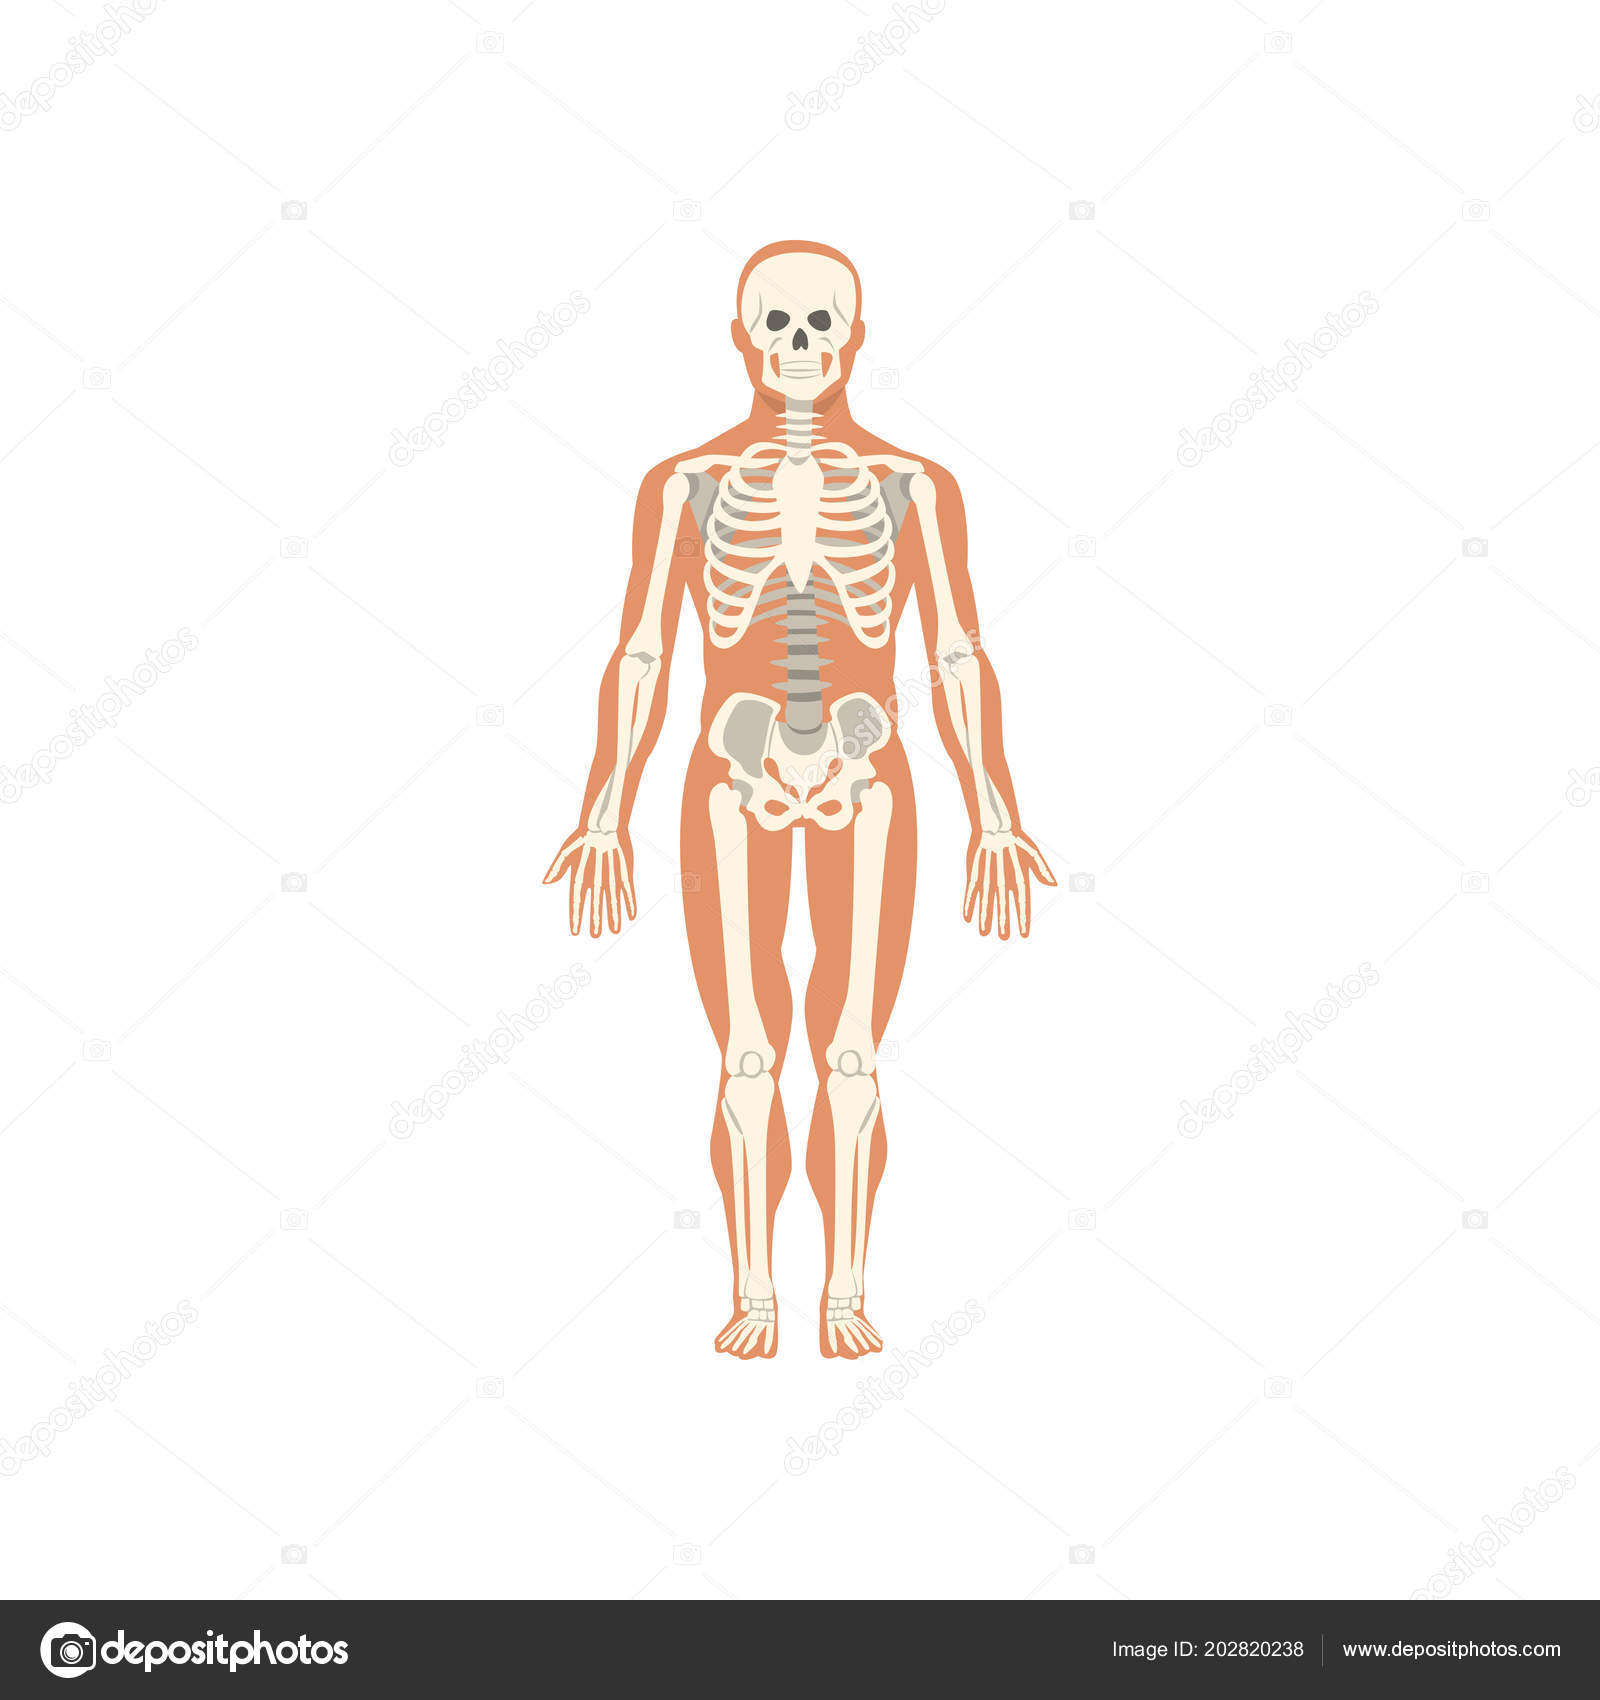 Human skeletal system anatomy of human body vector illustration on human skeletal system anatomy of human body vector illustration on a white background vetores ccuart Choice Image